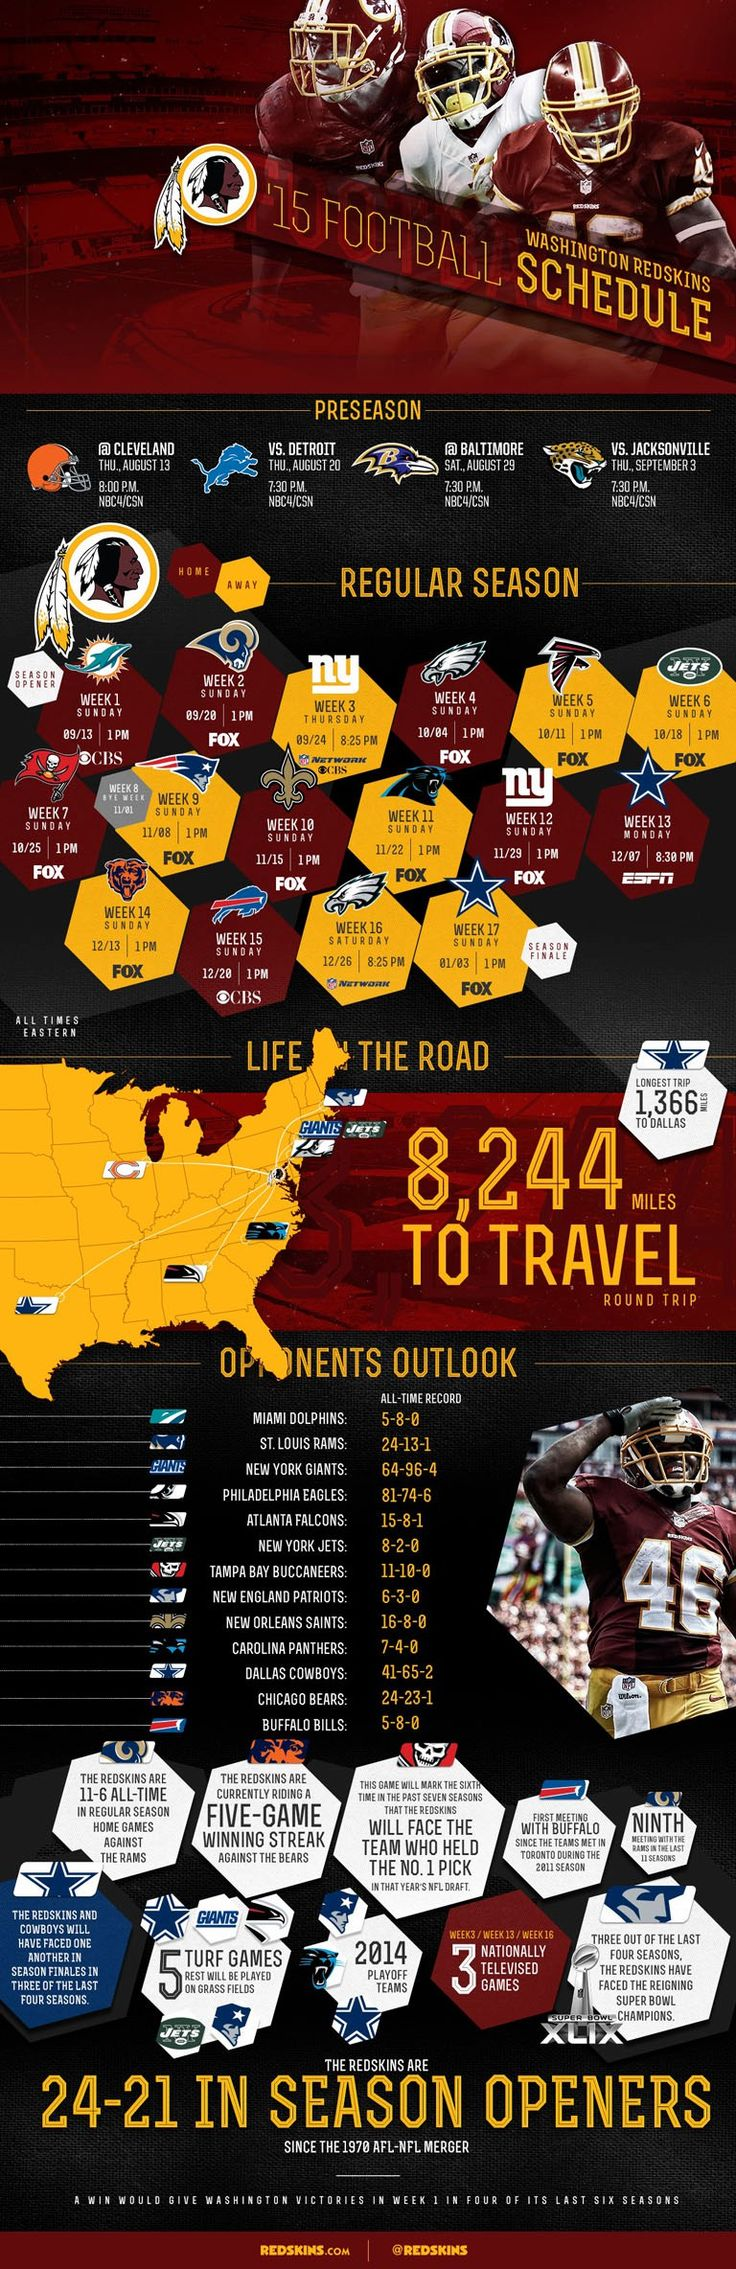 2015 Washington Redskins schedule released POSTED 11:48 AM, APRIL 22, 2015, BY BECCA MITCHELL